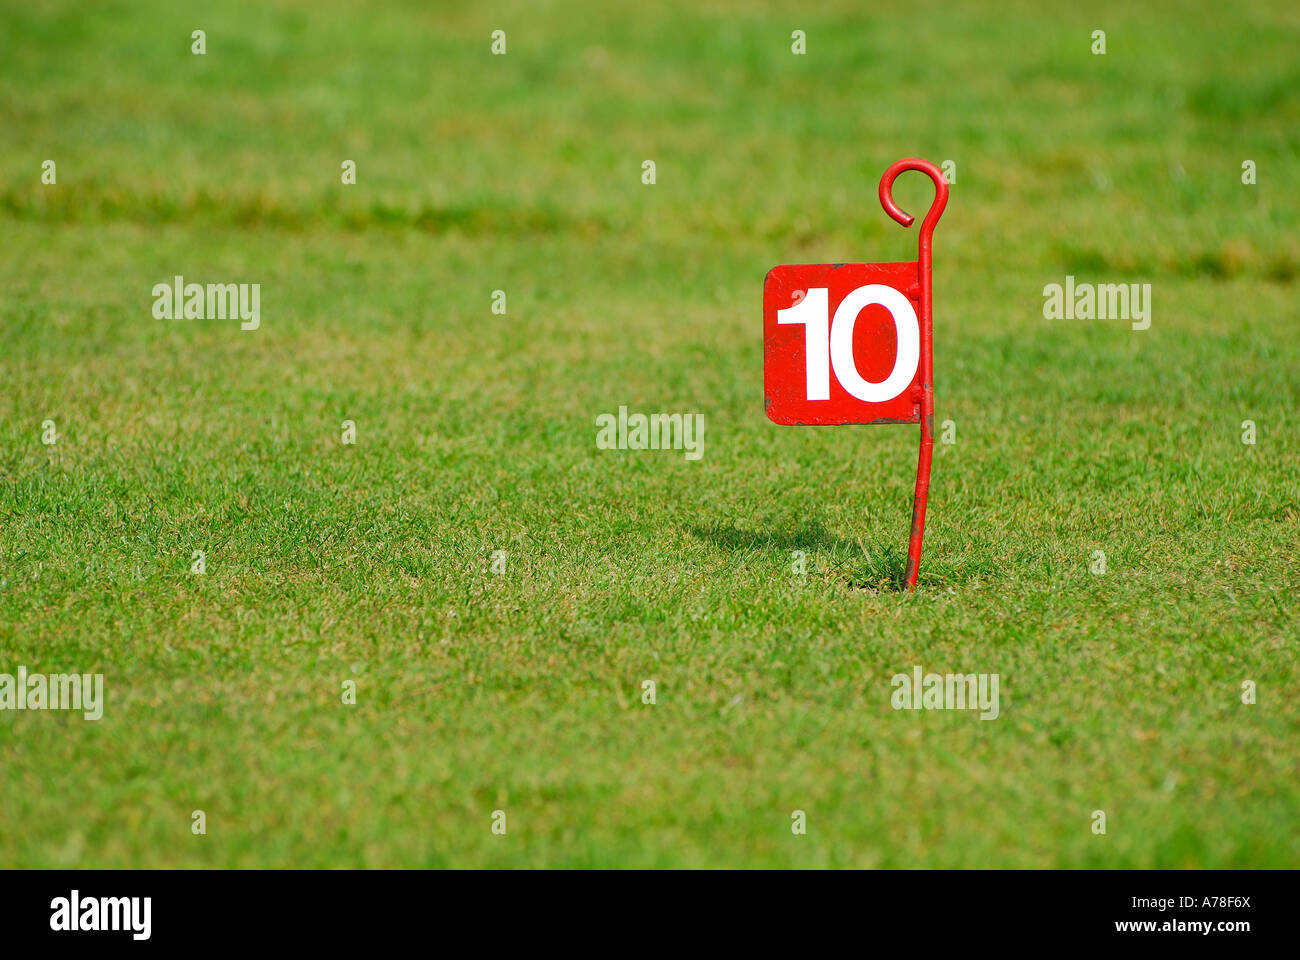 number 10 painted on red metal golf flag - Stock Image